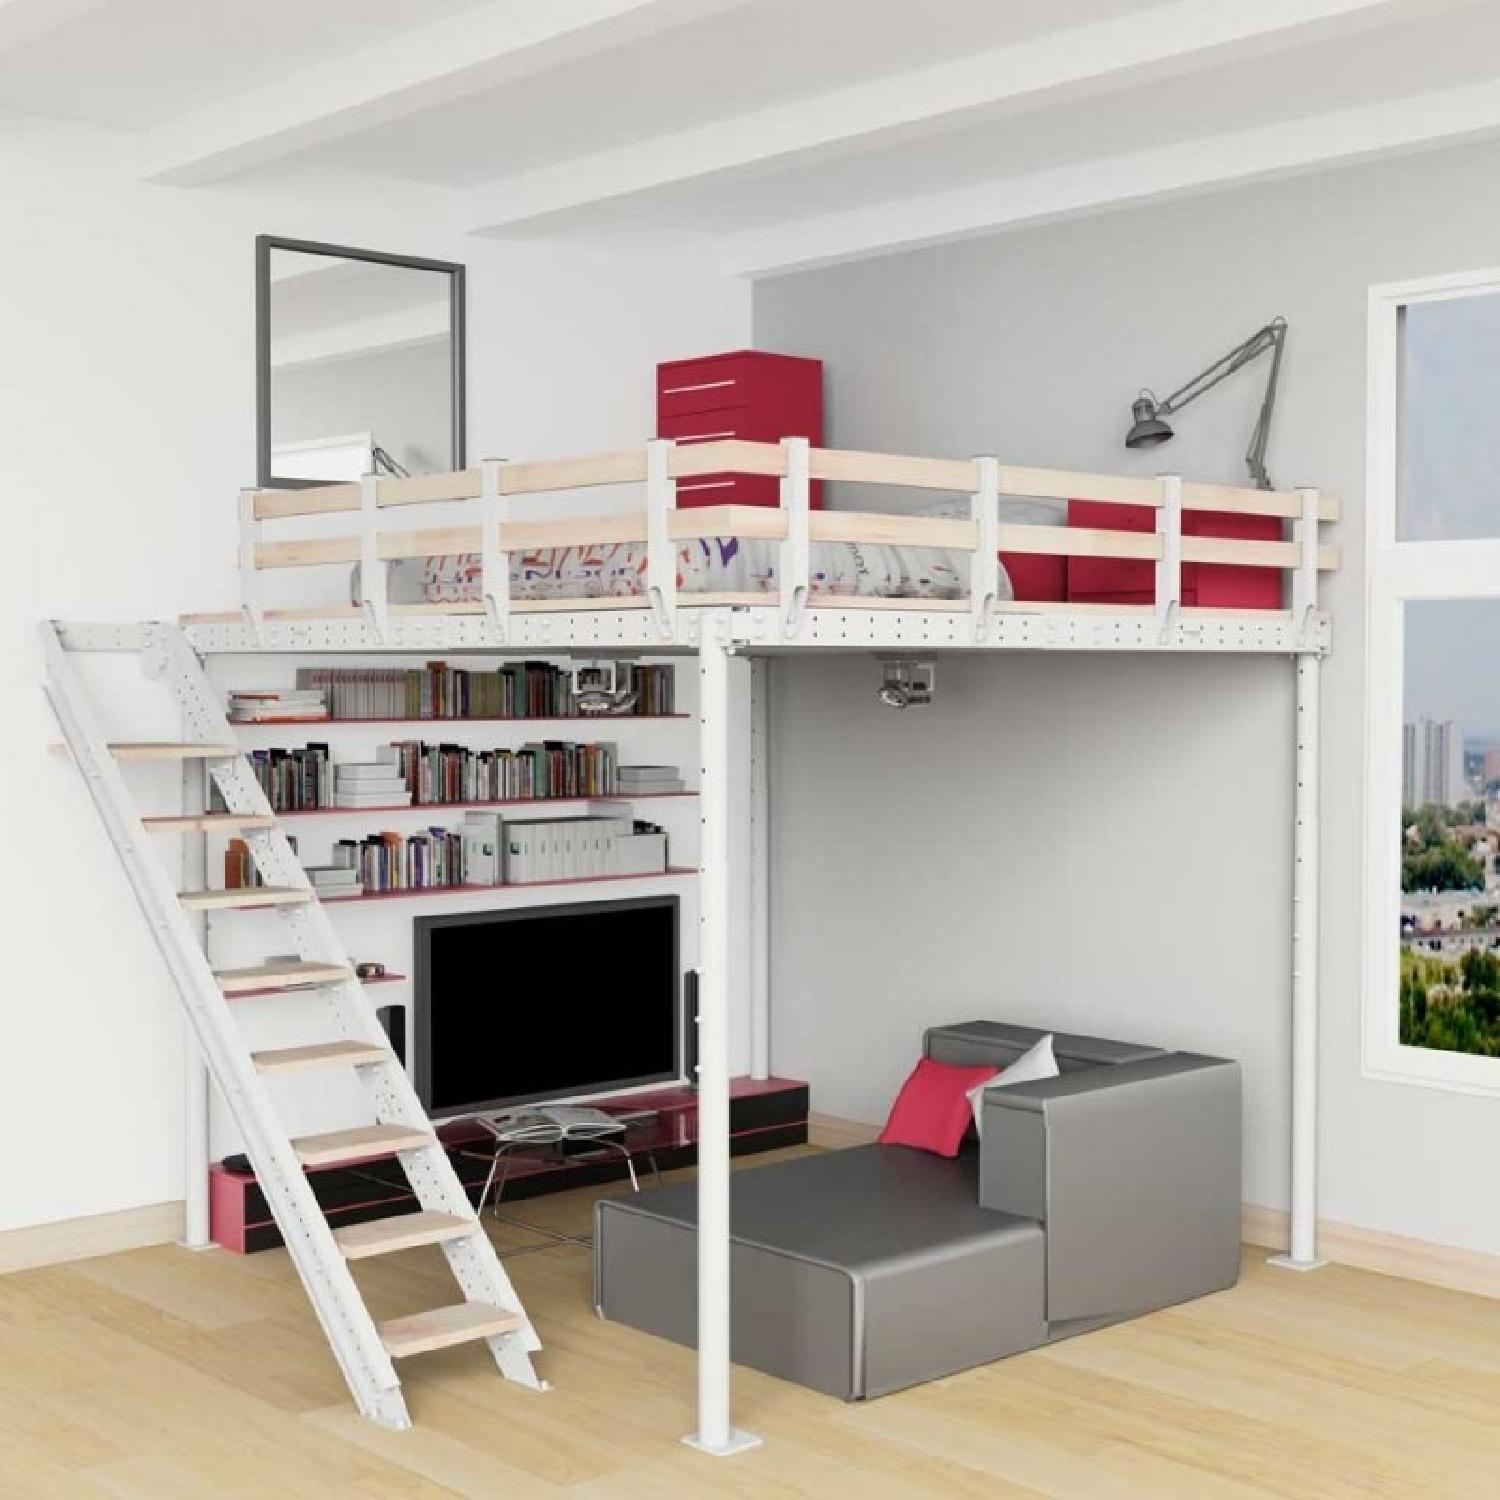 Loft Bed TS 8 w/ Lateral Stairs - image-1